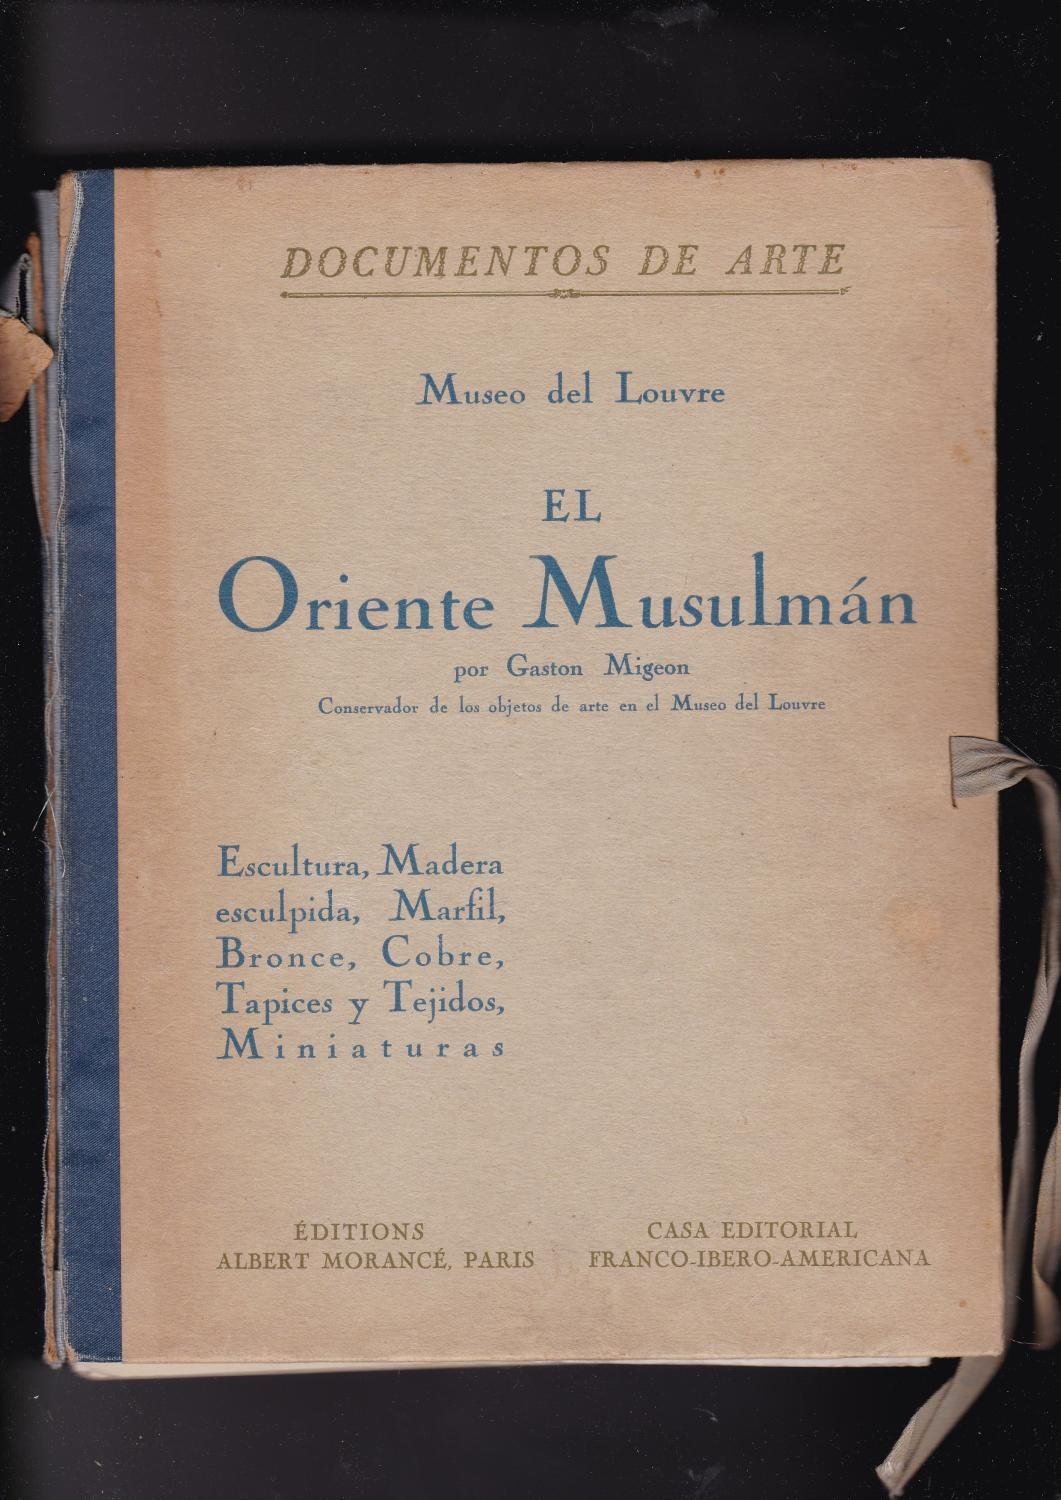 Documentos de Arte. Museo del Louvre EL ORIENTE MUSULMAN [2 volumes] Migeon, Gaston Very Good Hardcover